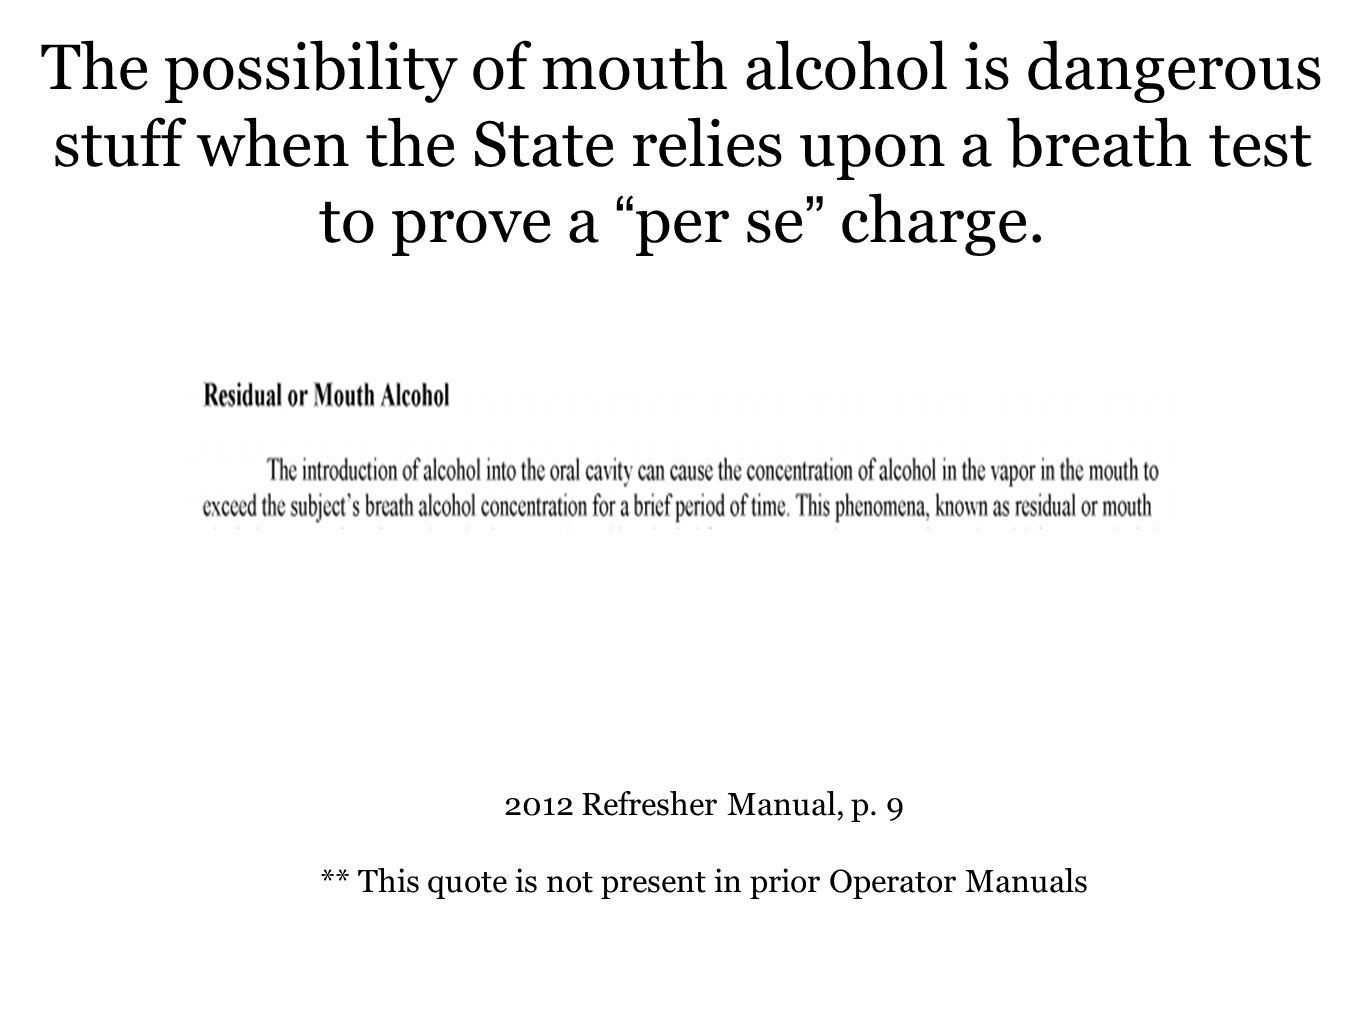 ** This quote is not present in prior Operator Manuals